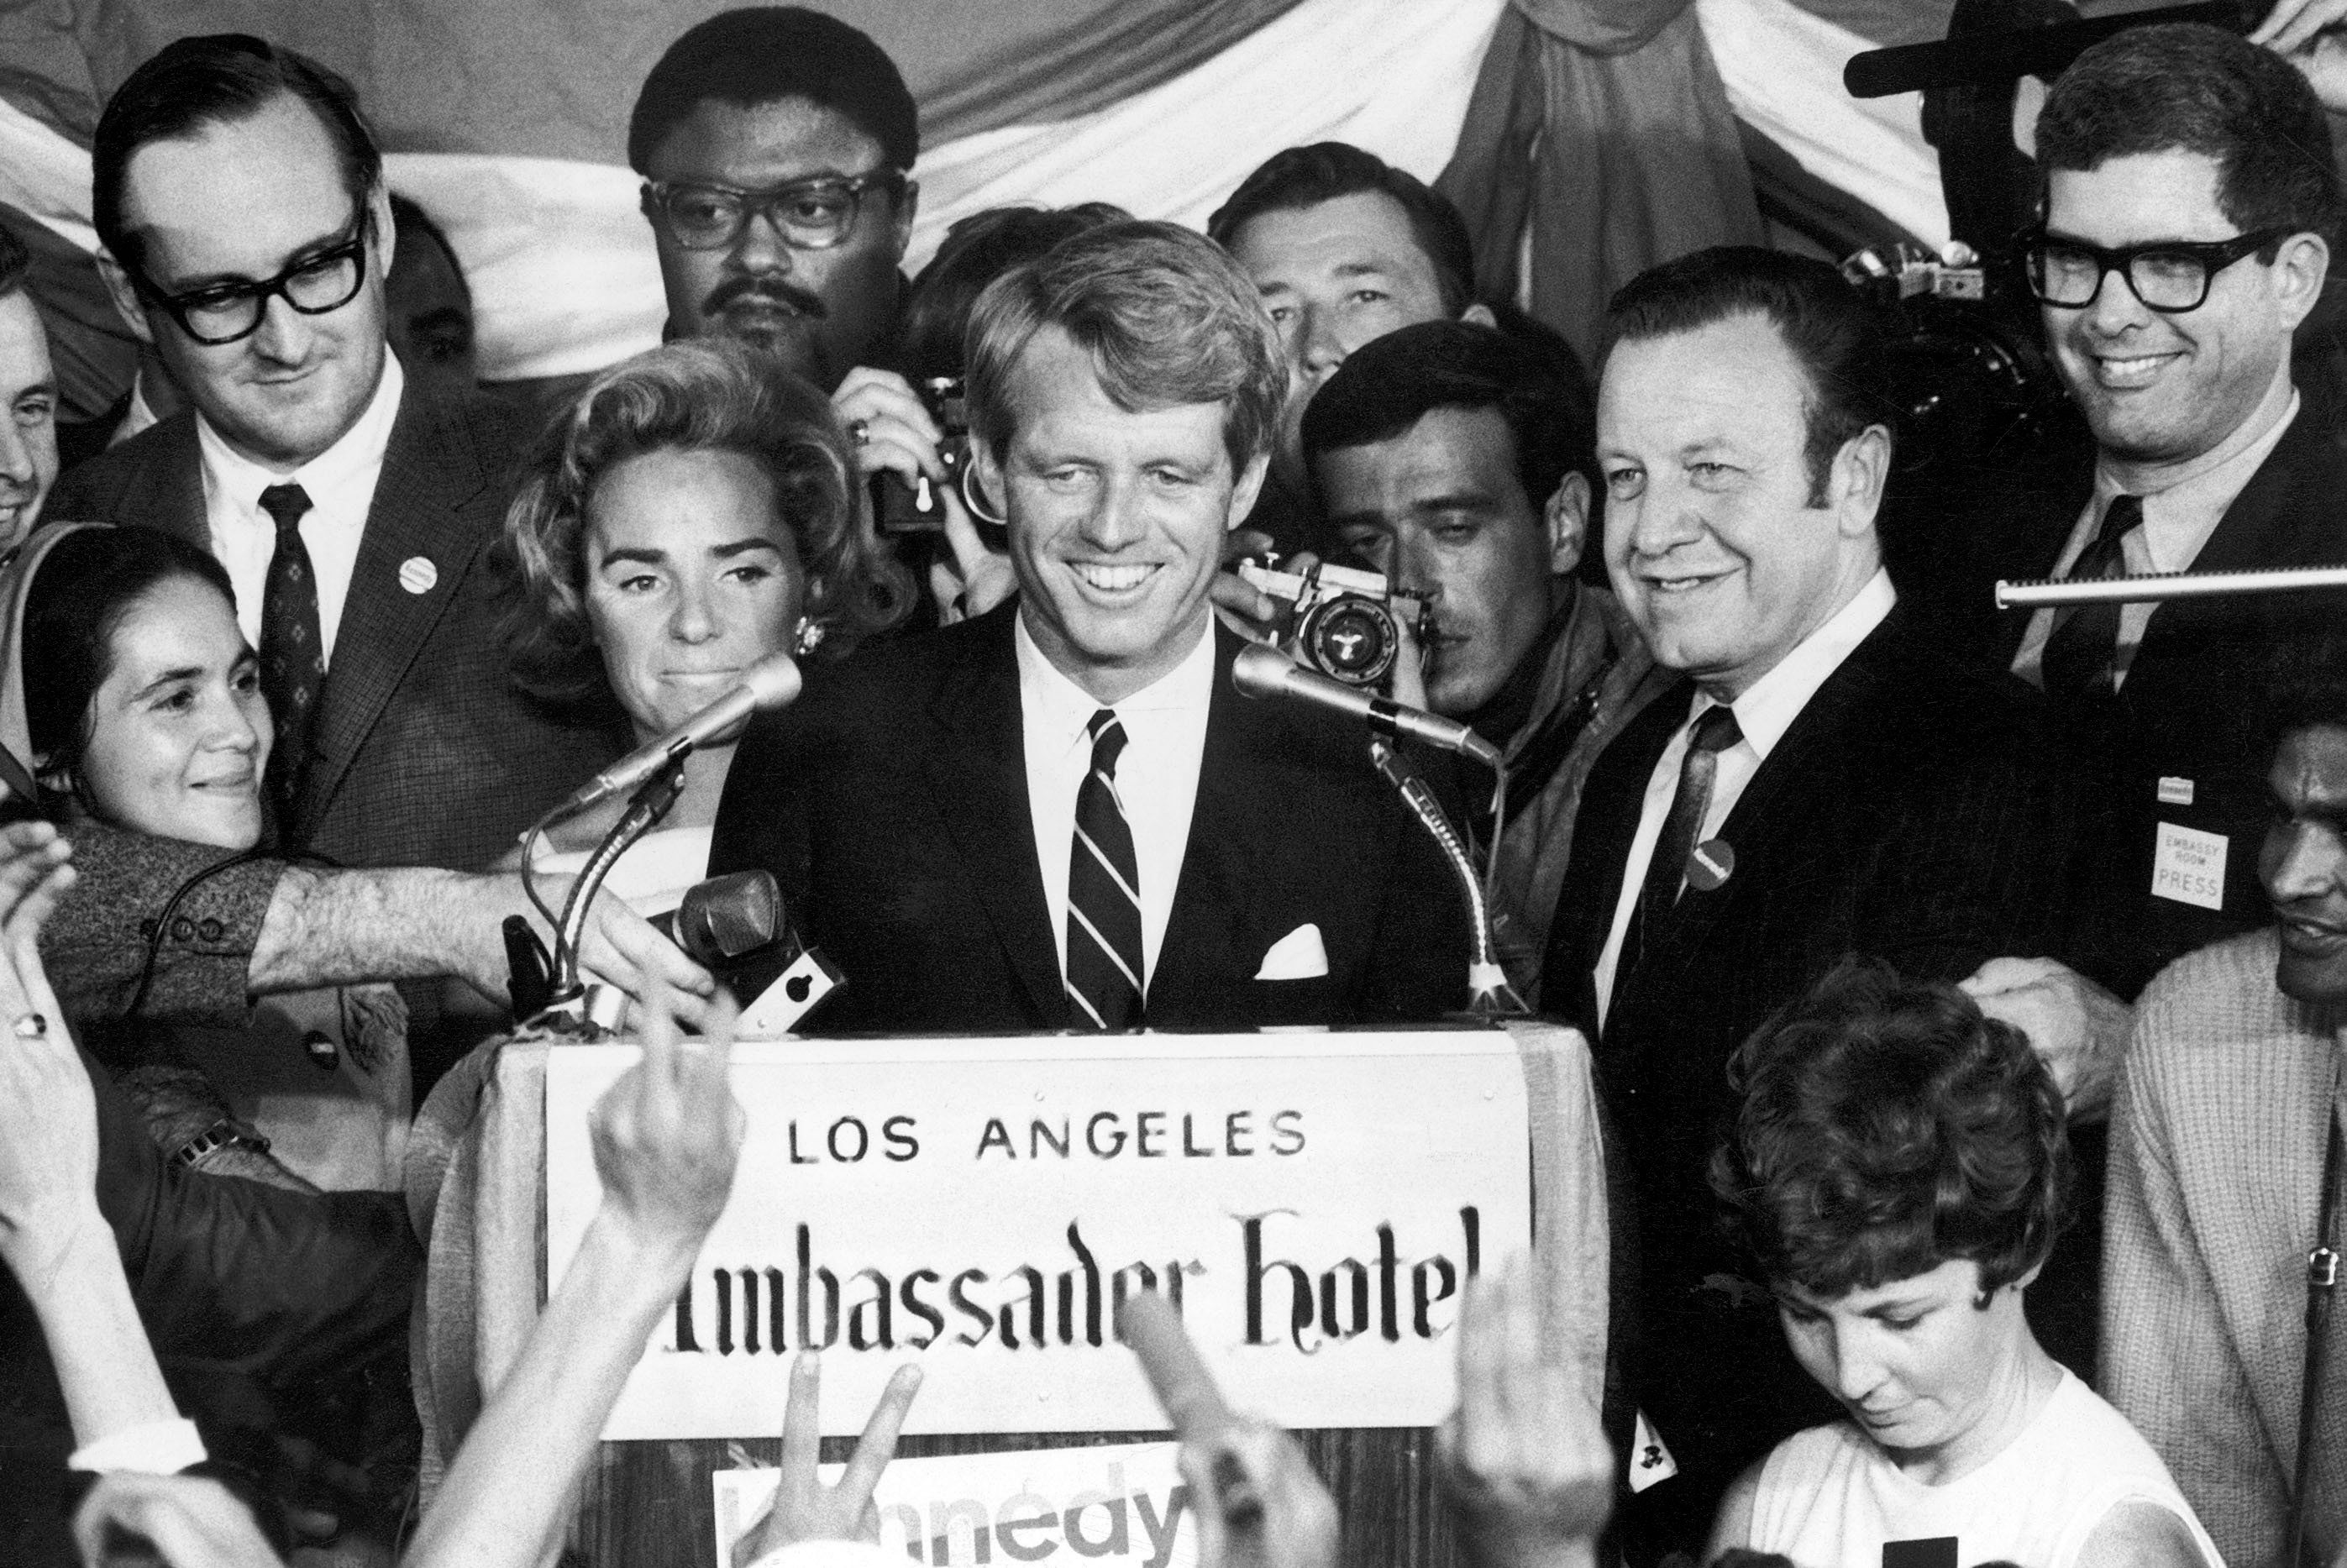 Kennedy celebrated his California primary win in a speech to supporters at the Ambassador Hotel in Los Angeles. Moments later